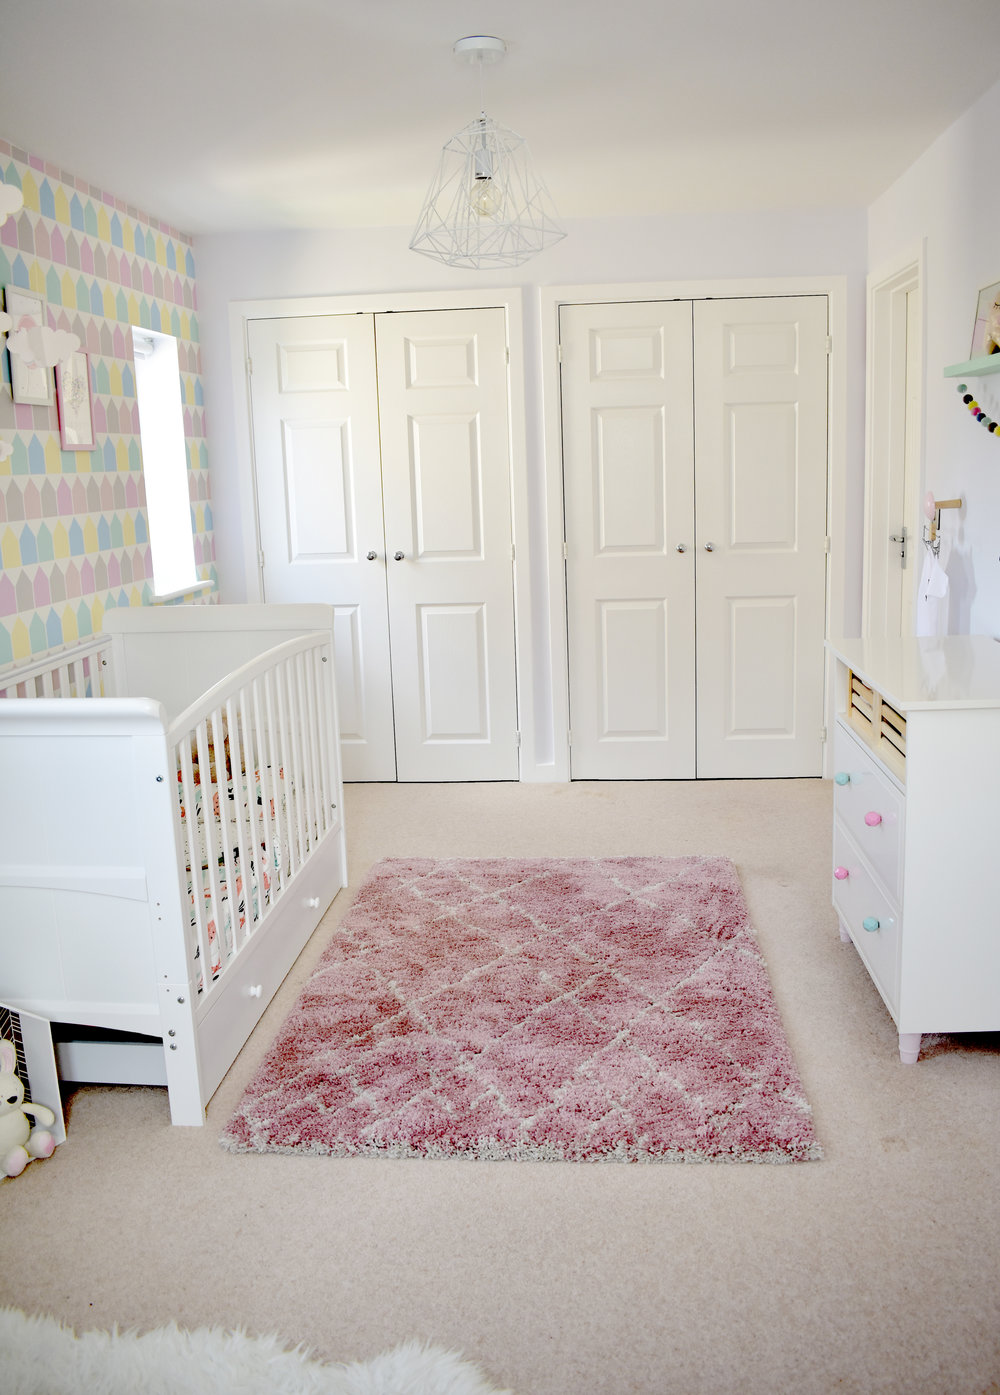 It is a long and narrow room so I have placed the furniture against the wall to allow for space for tummy time and play time on this soft Berber style rug.